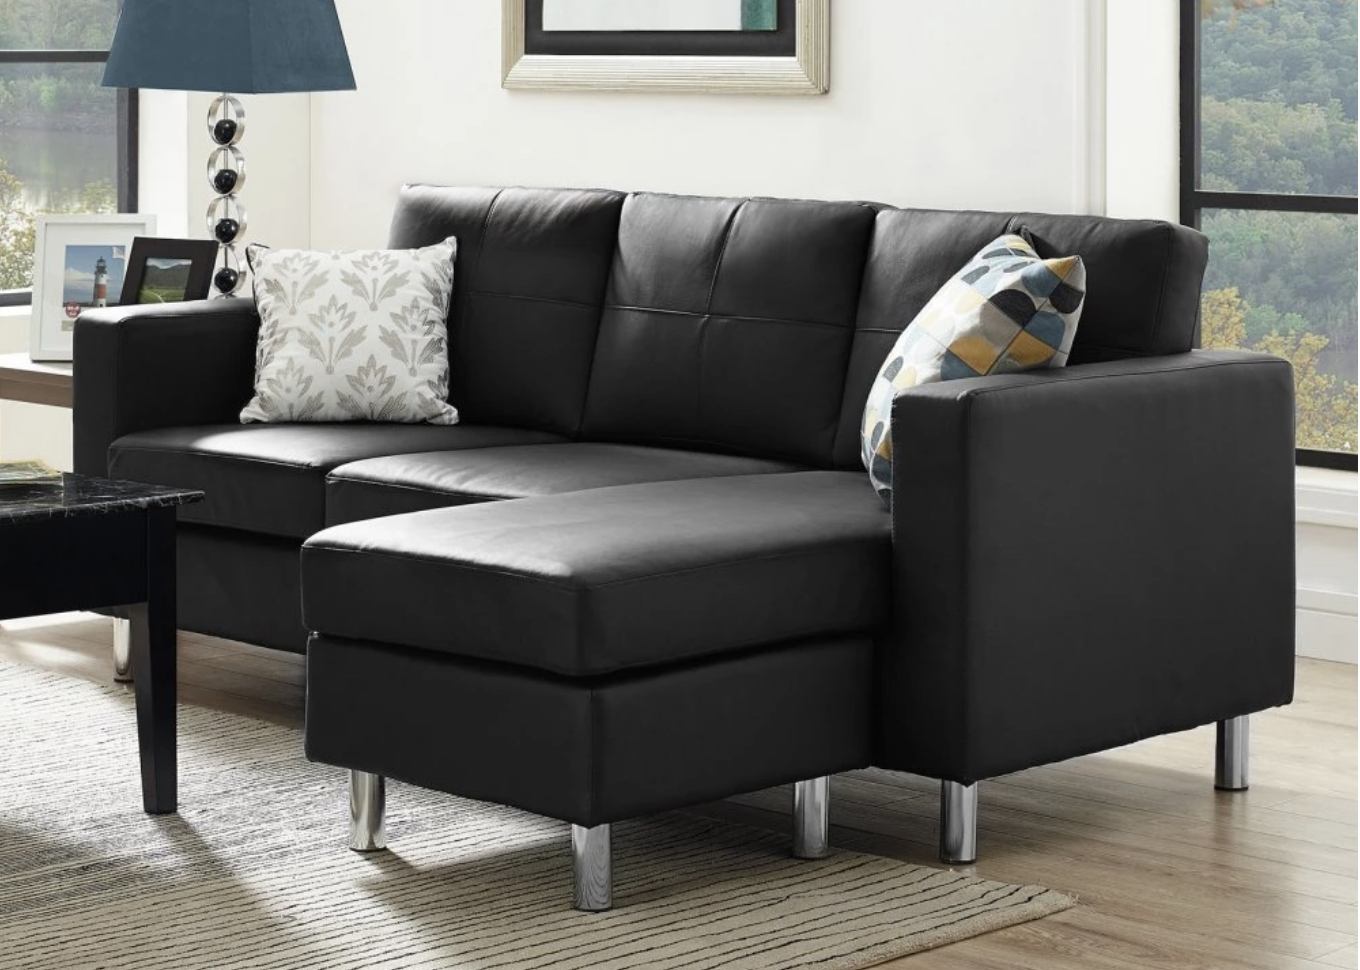 Widely Used 75 Modern Sectional Sofas For Small Spaces (2018) Intended For Black Sectional Sofas (View 15 of 20)